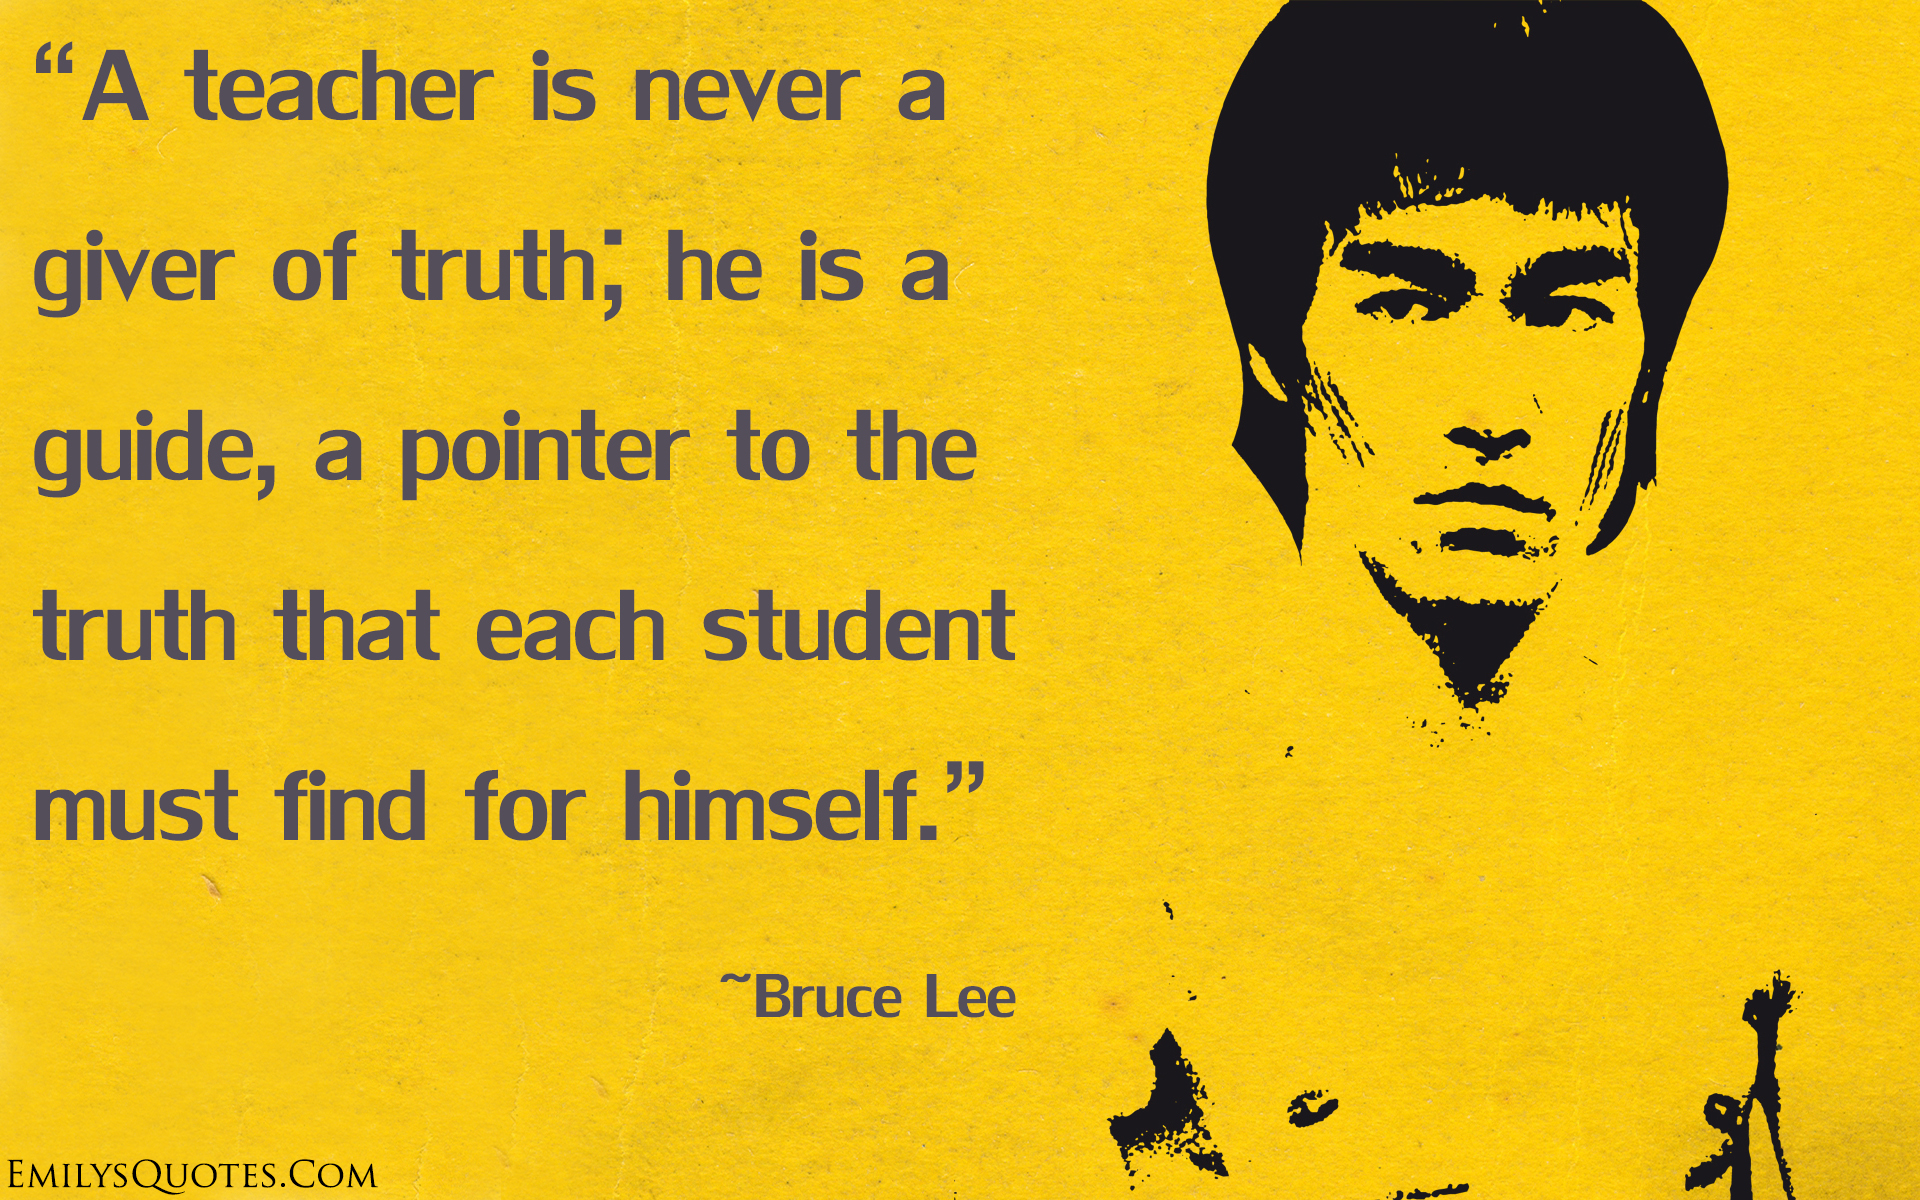 EmilysQuotes.Com - Bruce Lee, teacher, truth, guide, pointer, great, inspirational